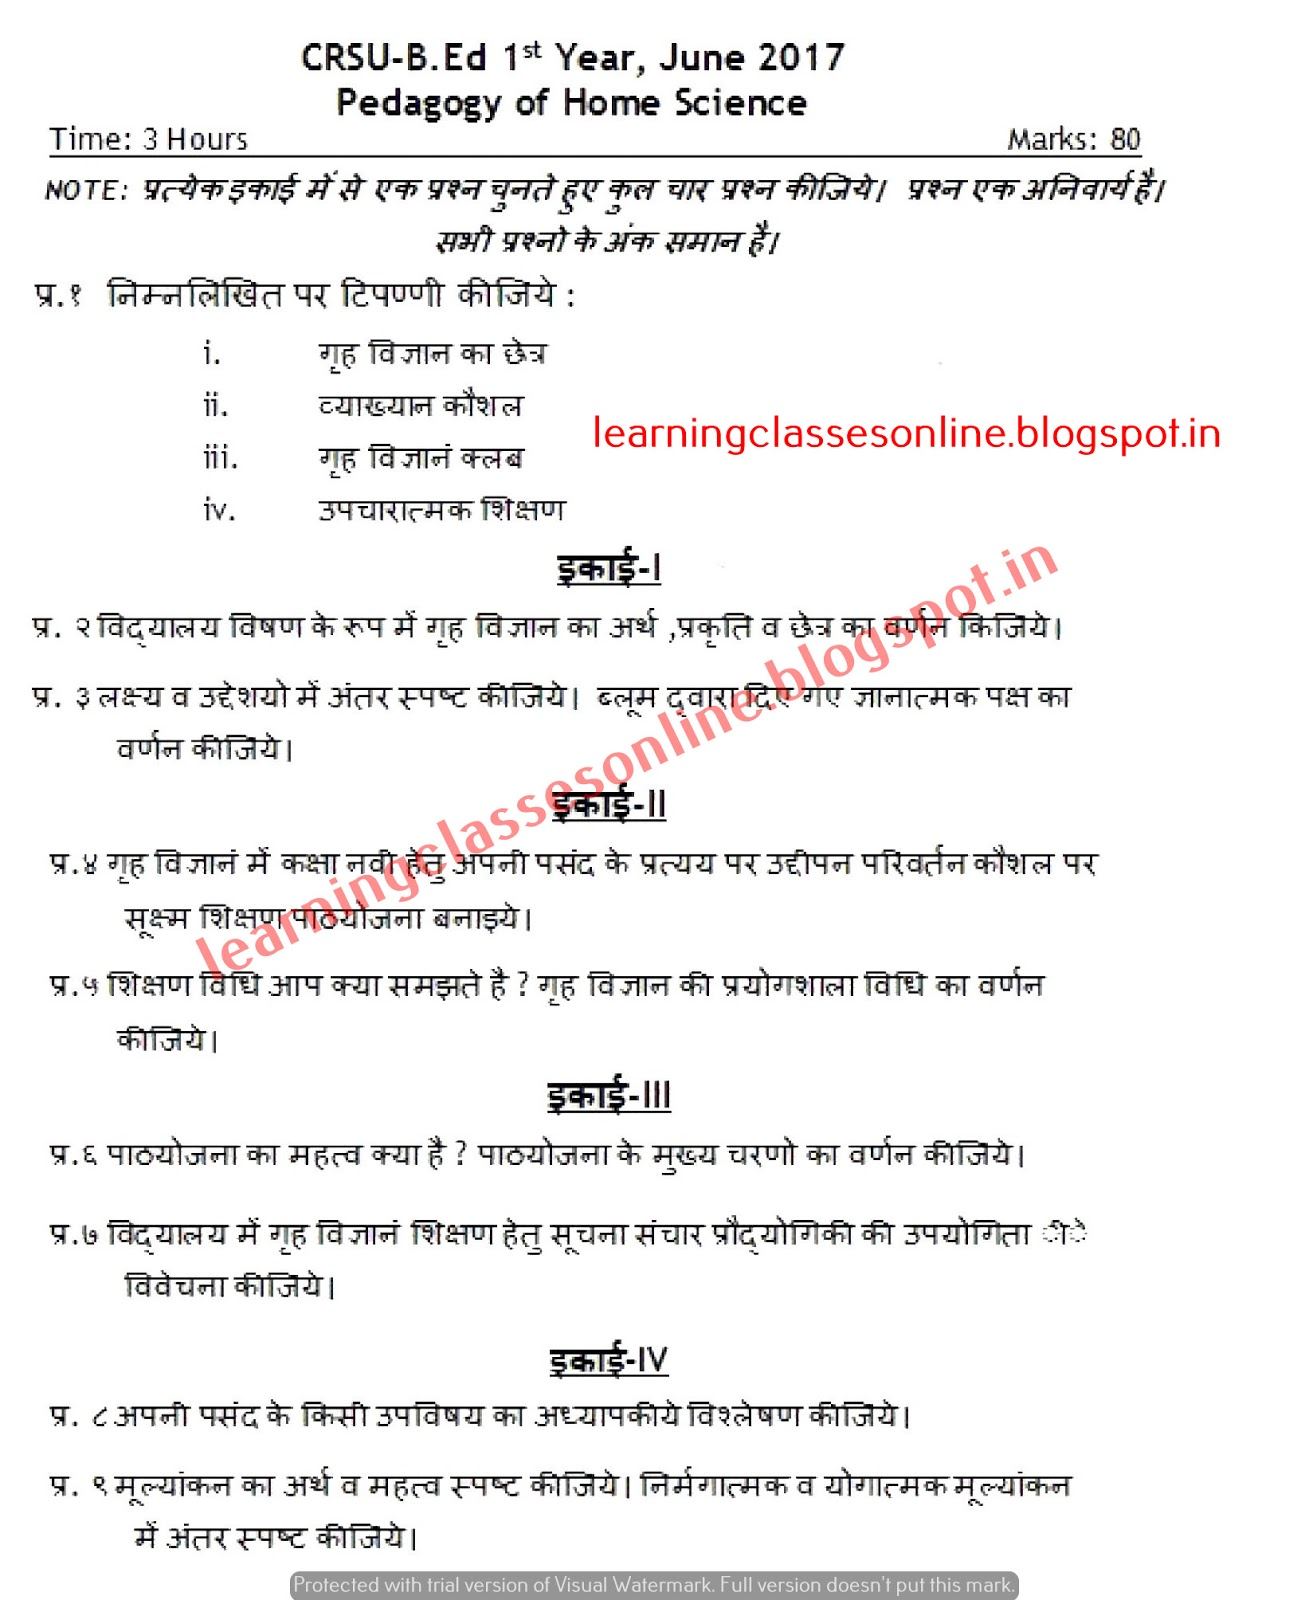 Pedagogy of Home Science question papers